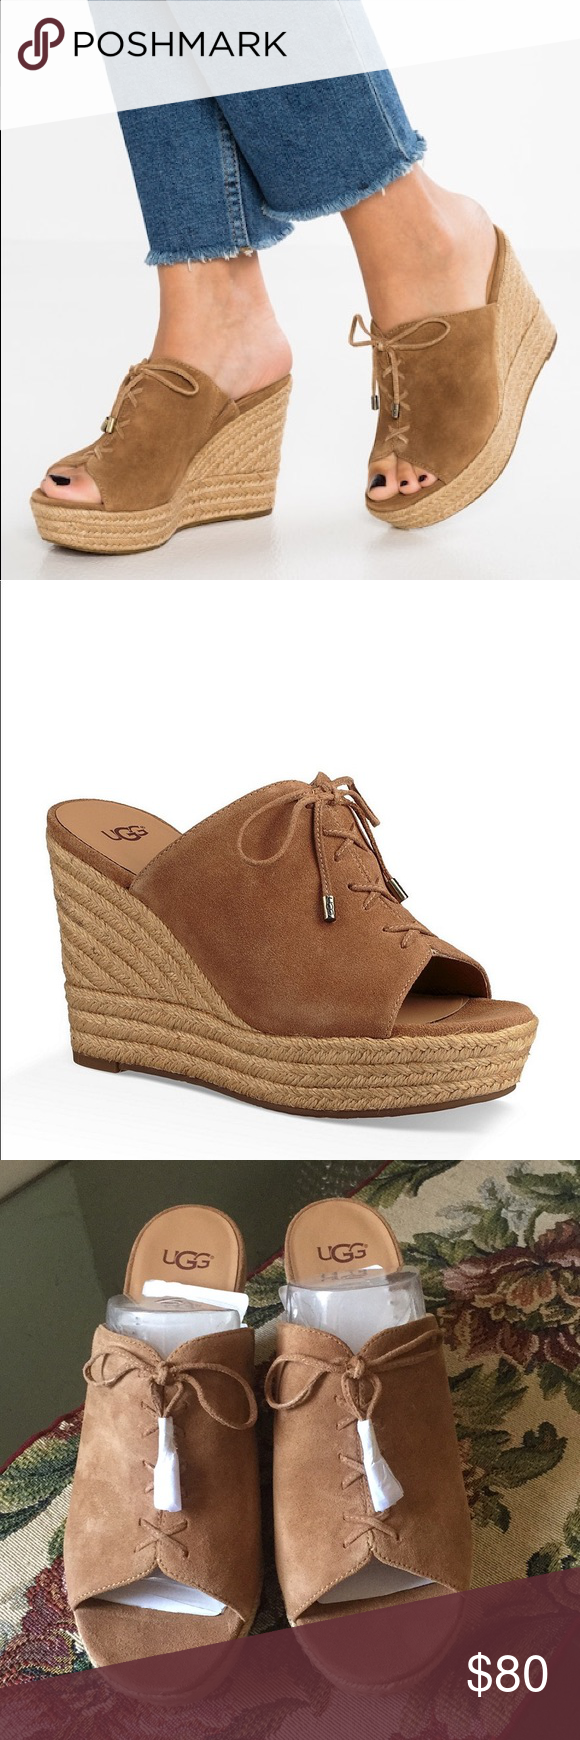 073318c52ca ✨NEW UGG GIORGIA CHESTNUT •True to size Satisfy your early-aughts ...